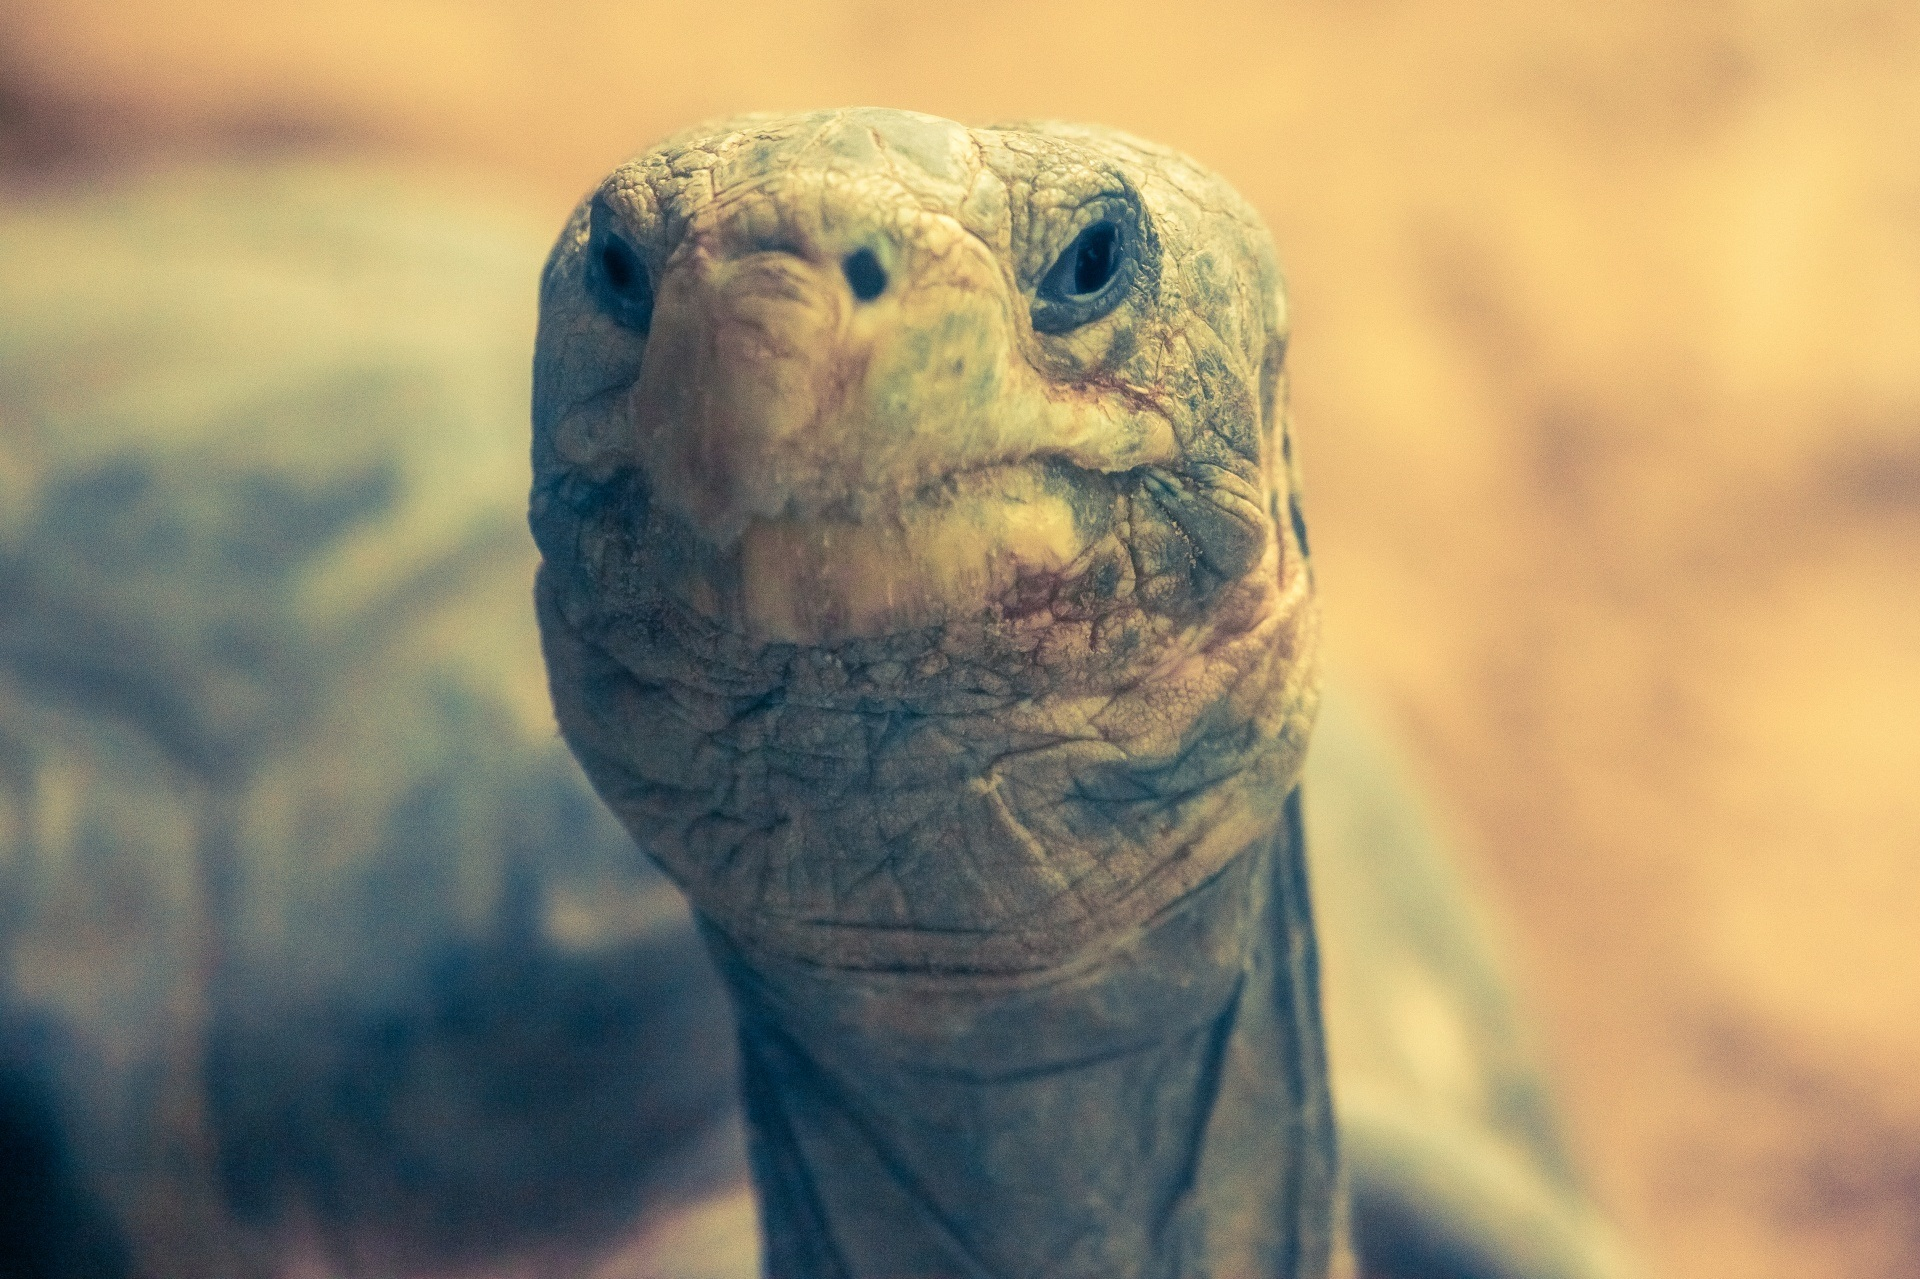 A picture of Galapagos Islands tortoise they're very famous. You'll need to earn a lot of money to spend a year there!